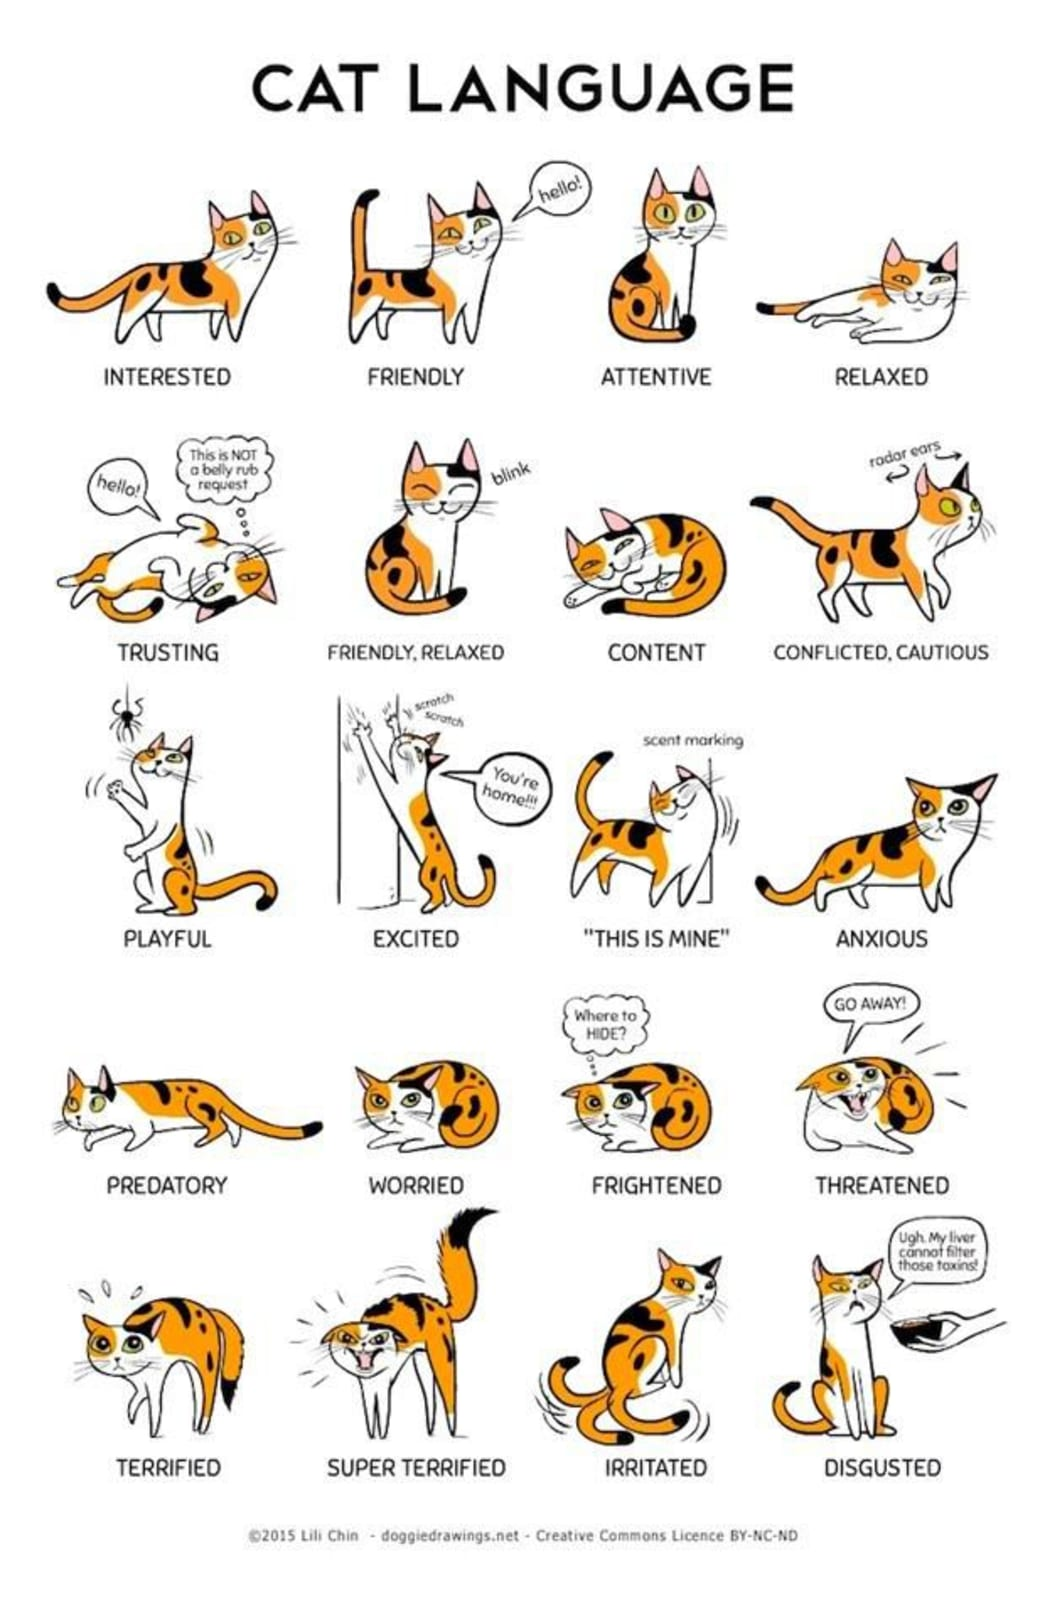 Cats' emotions can be deciphered through their different behaviors.